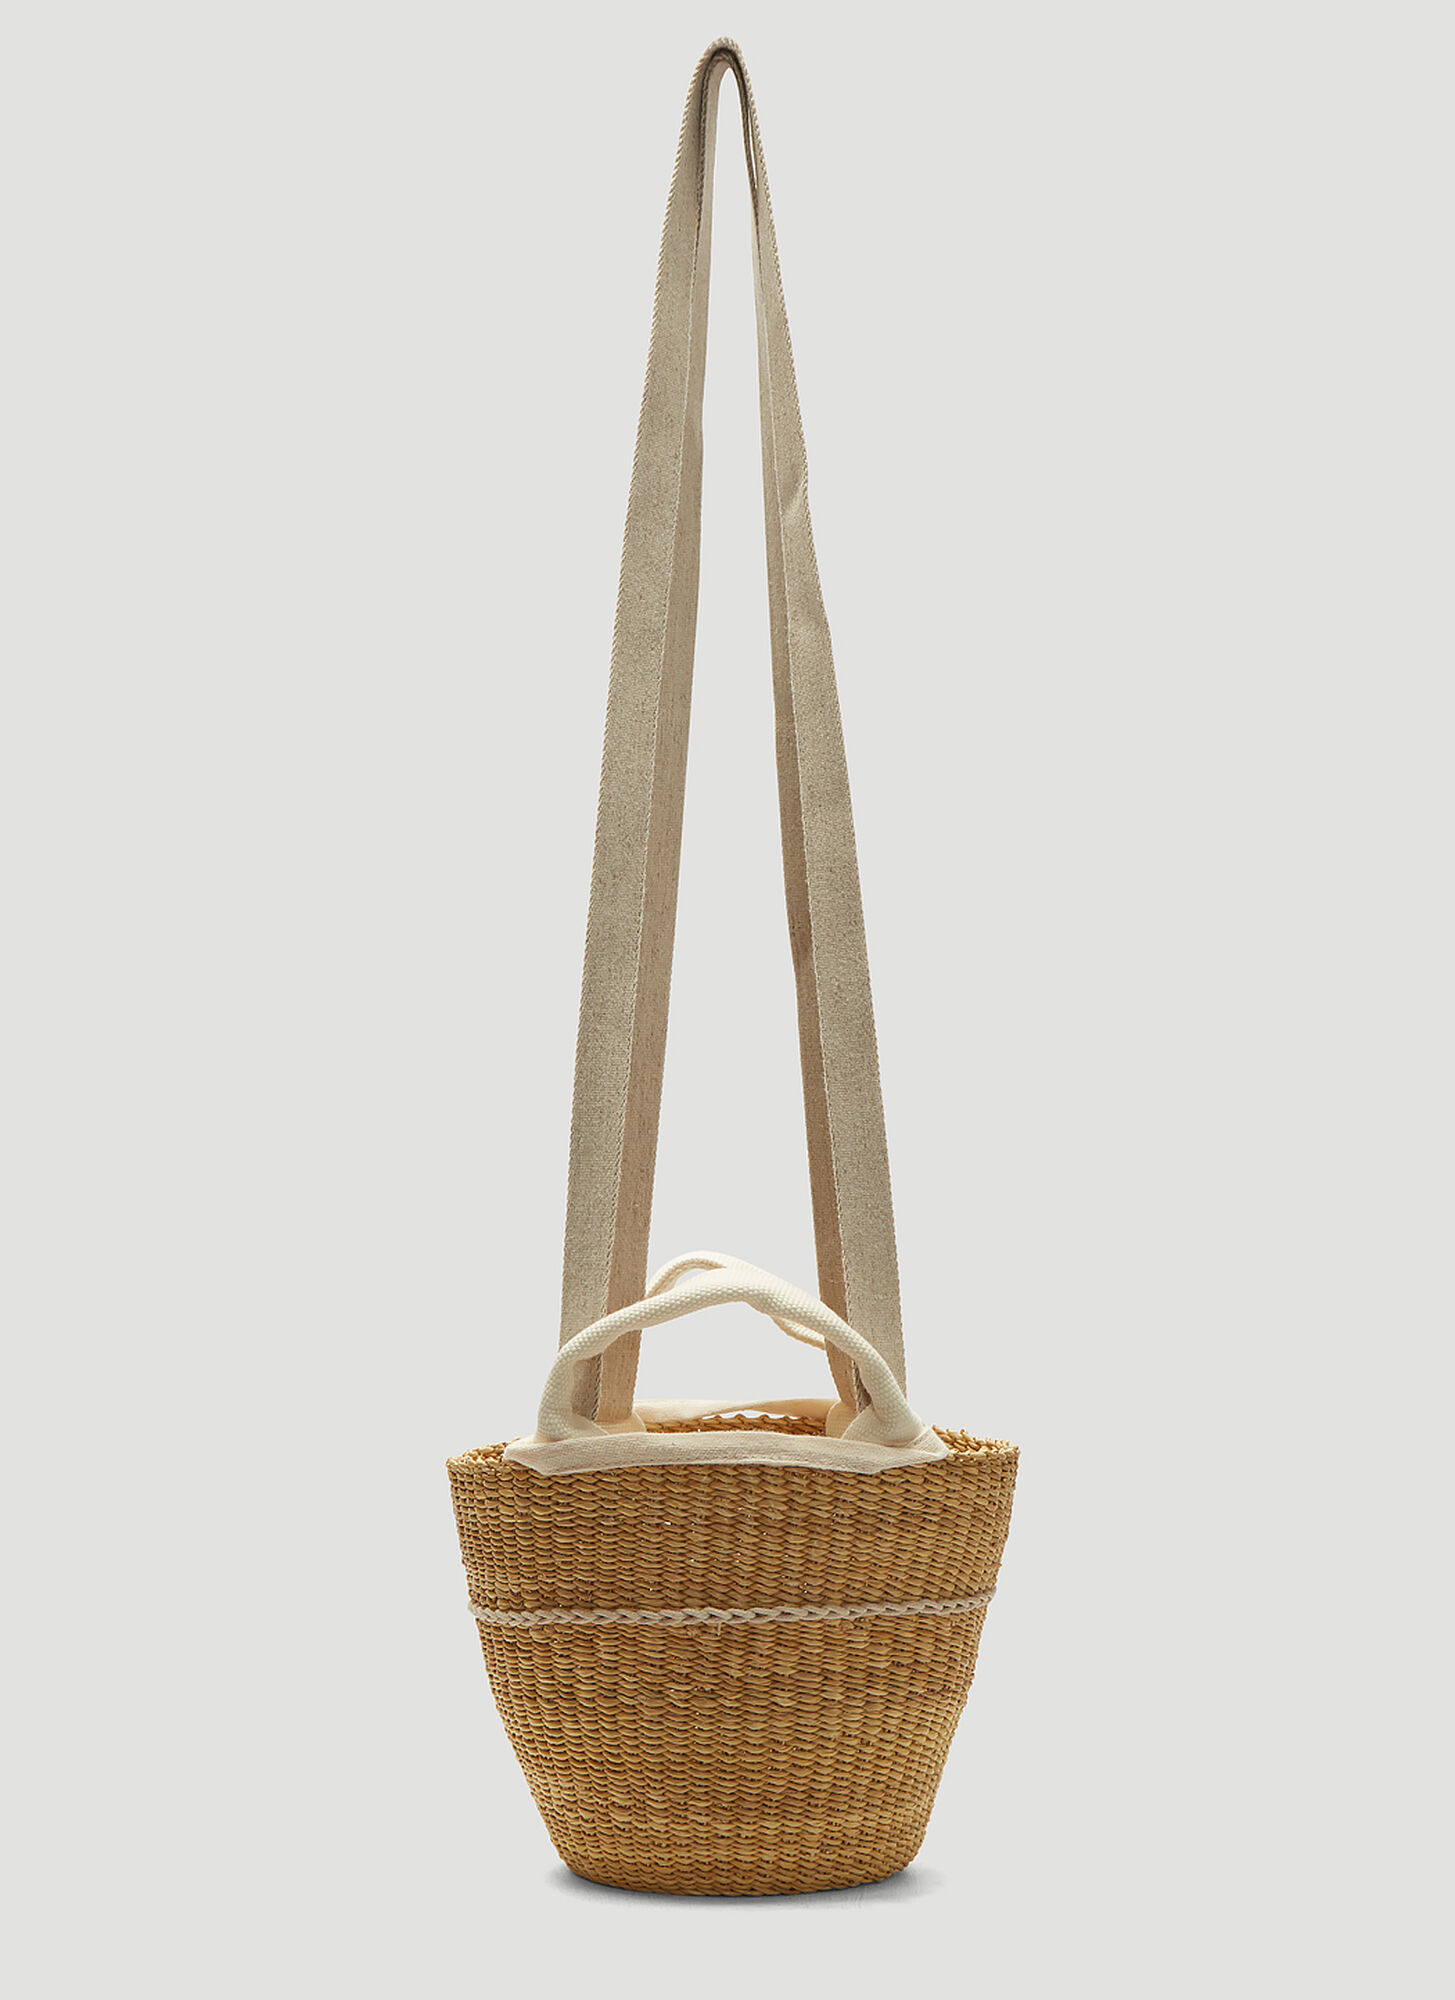 Muun Elisa Basket Bag in Beige